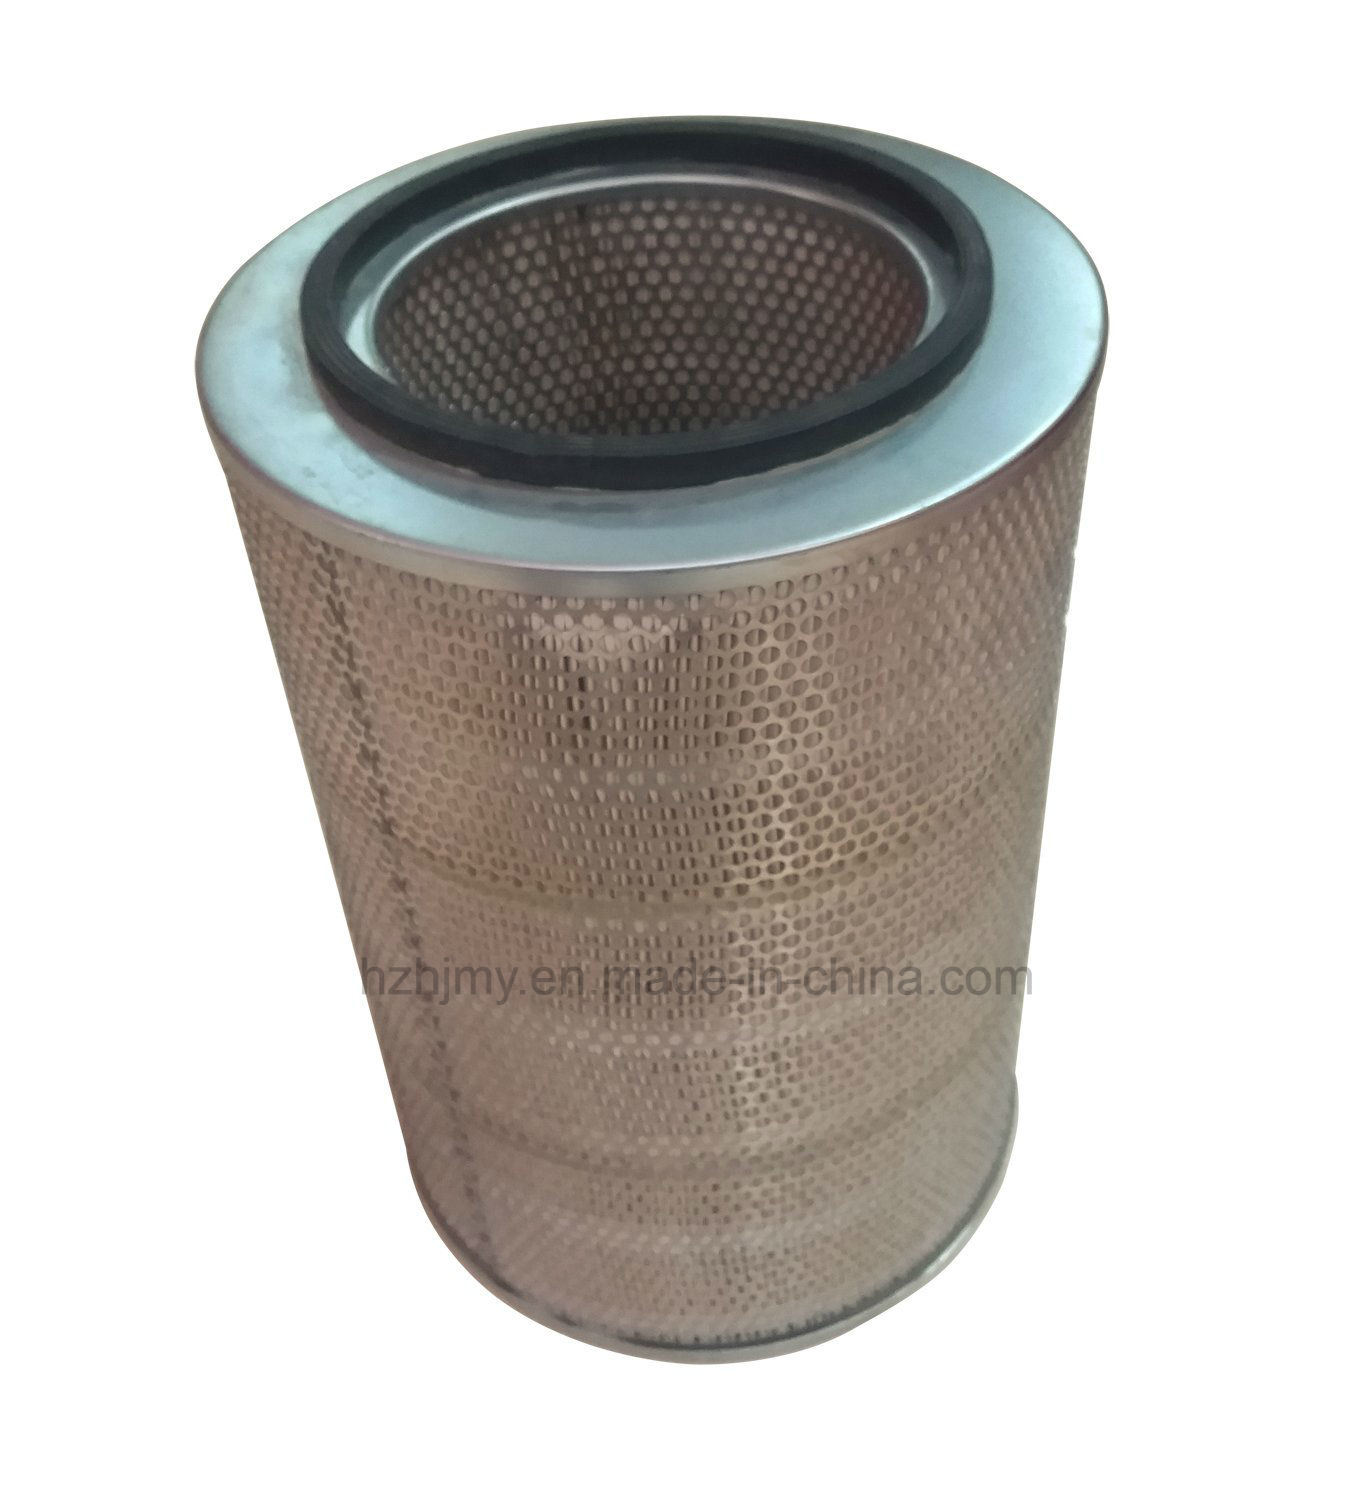 hight resolution of 96118207 air cleaner filter for doosan engine daewoo bus spare parts